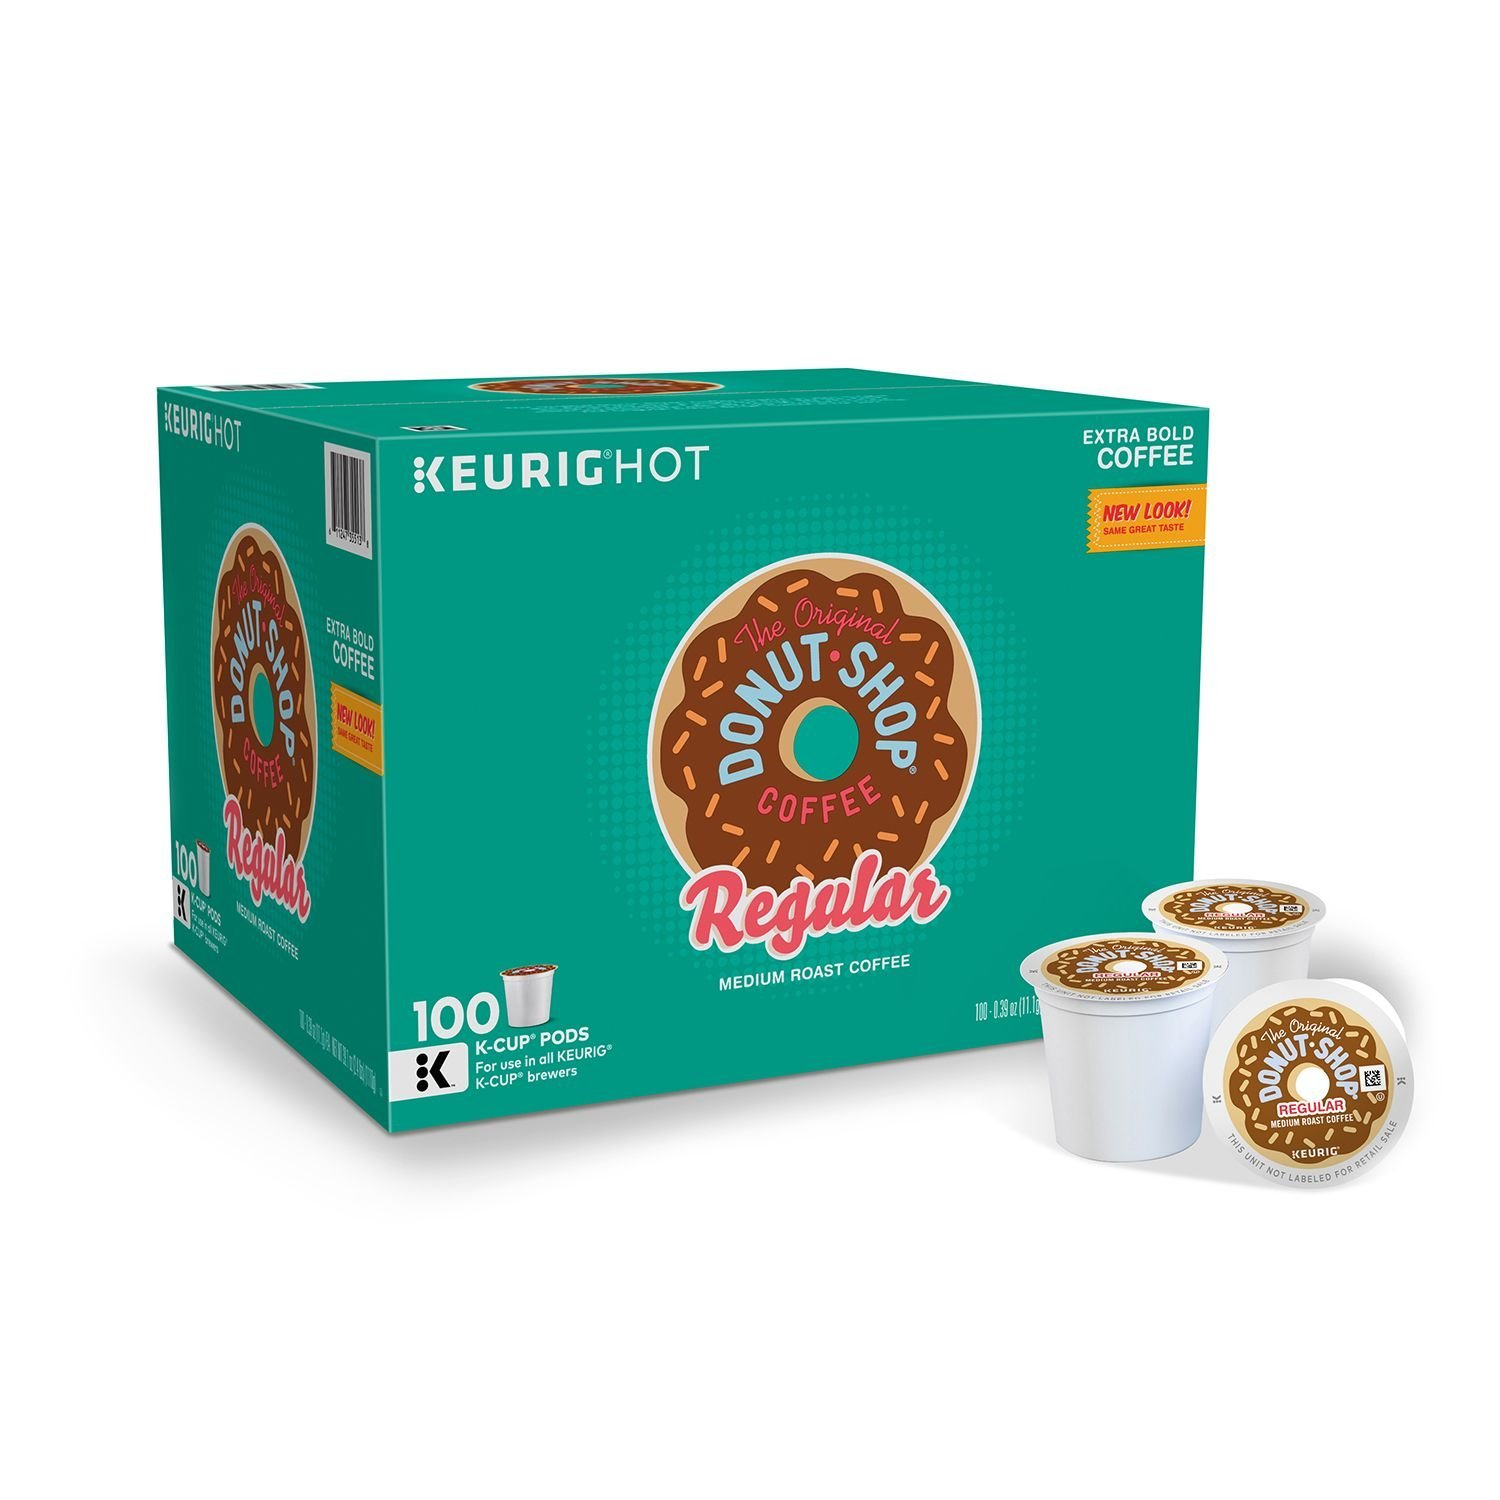 The Original Donut Shop The Single-Serve K-Cup Pods, Medium Roast Coffee, 100 Count, 100 Count, Regular, 100 Count